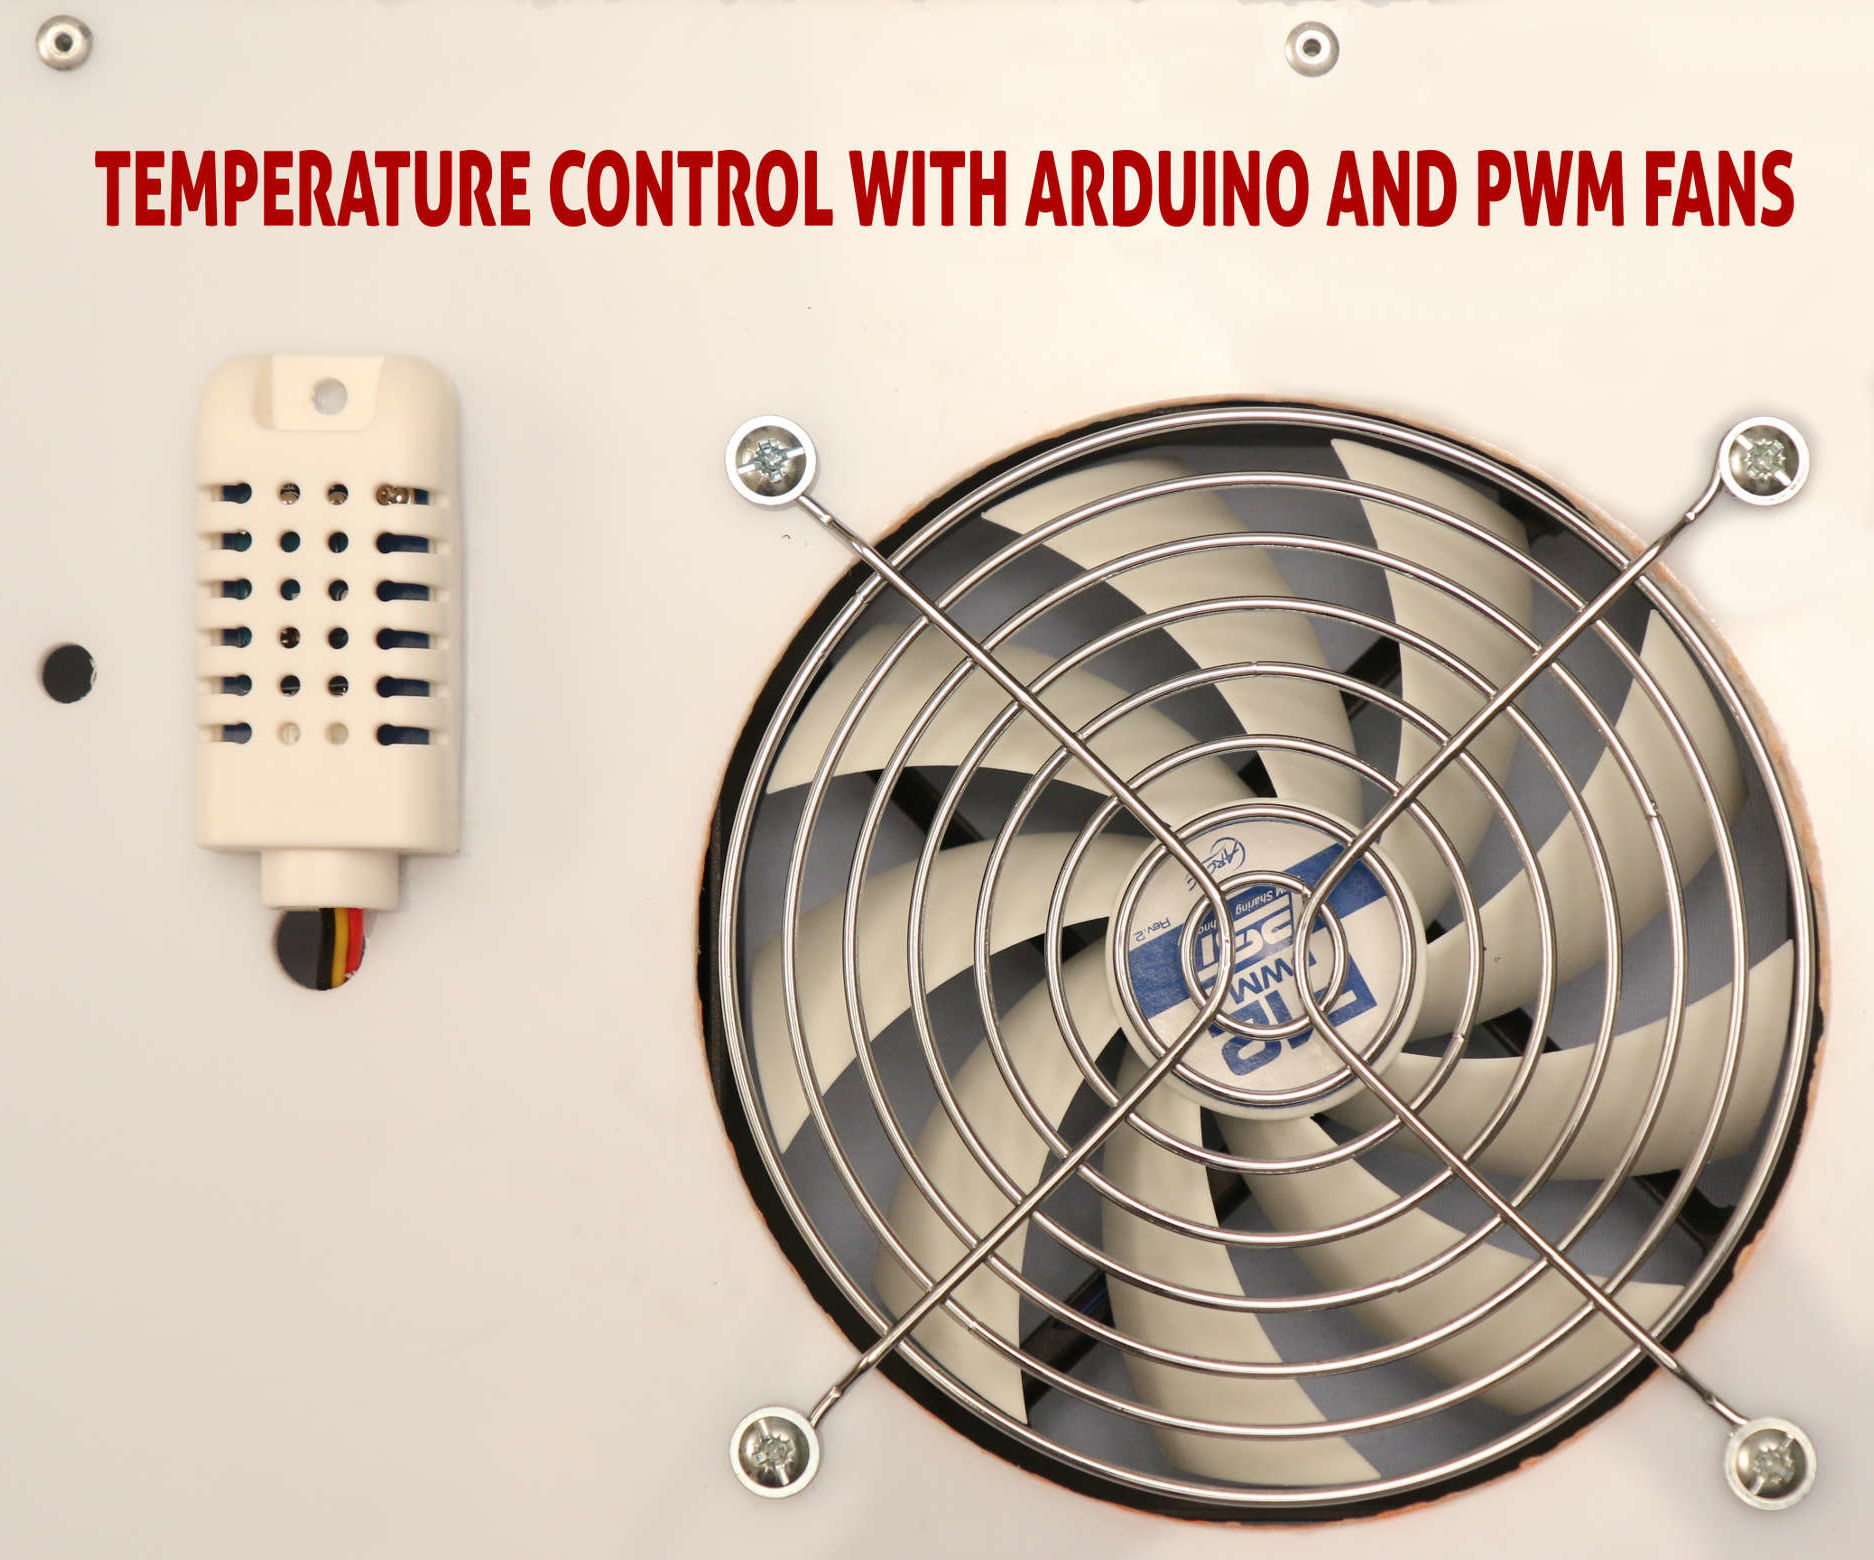 Temperature Control With Arduino and PWM Fans: 6 Steps (with Pictures)